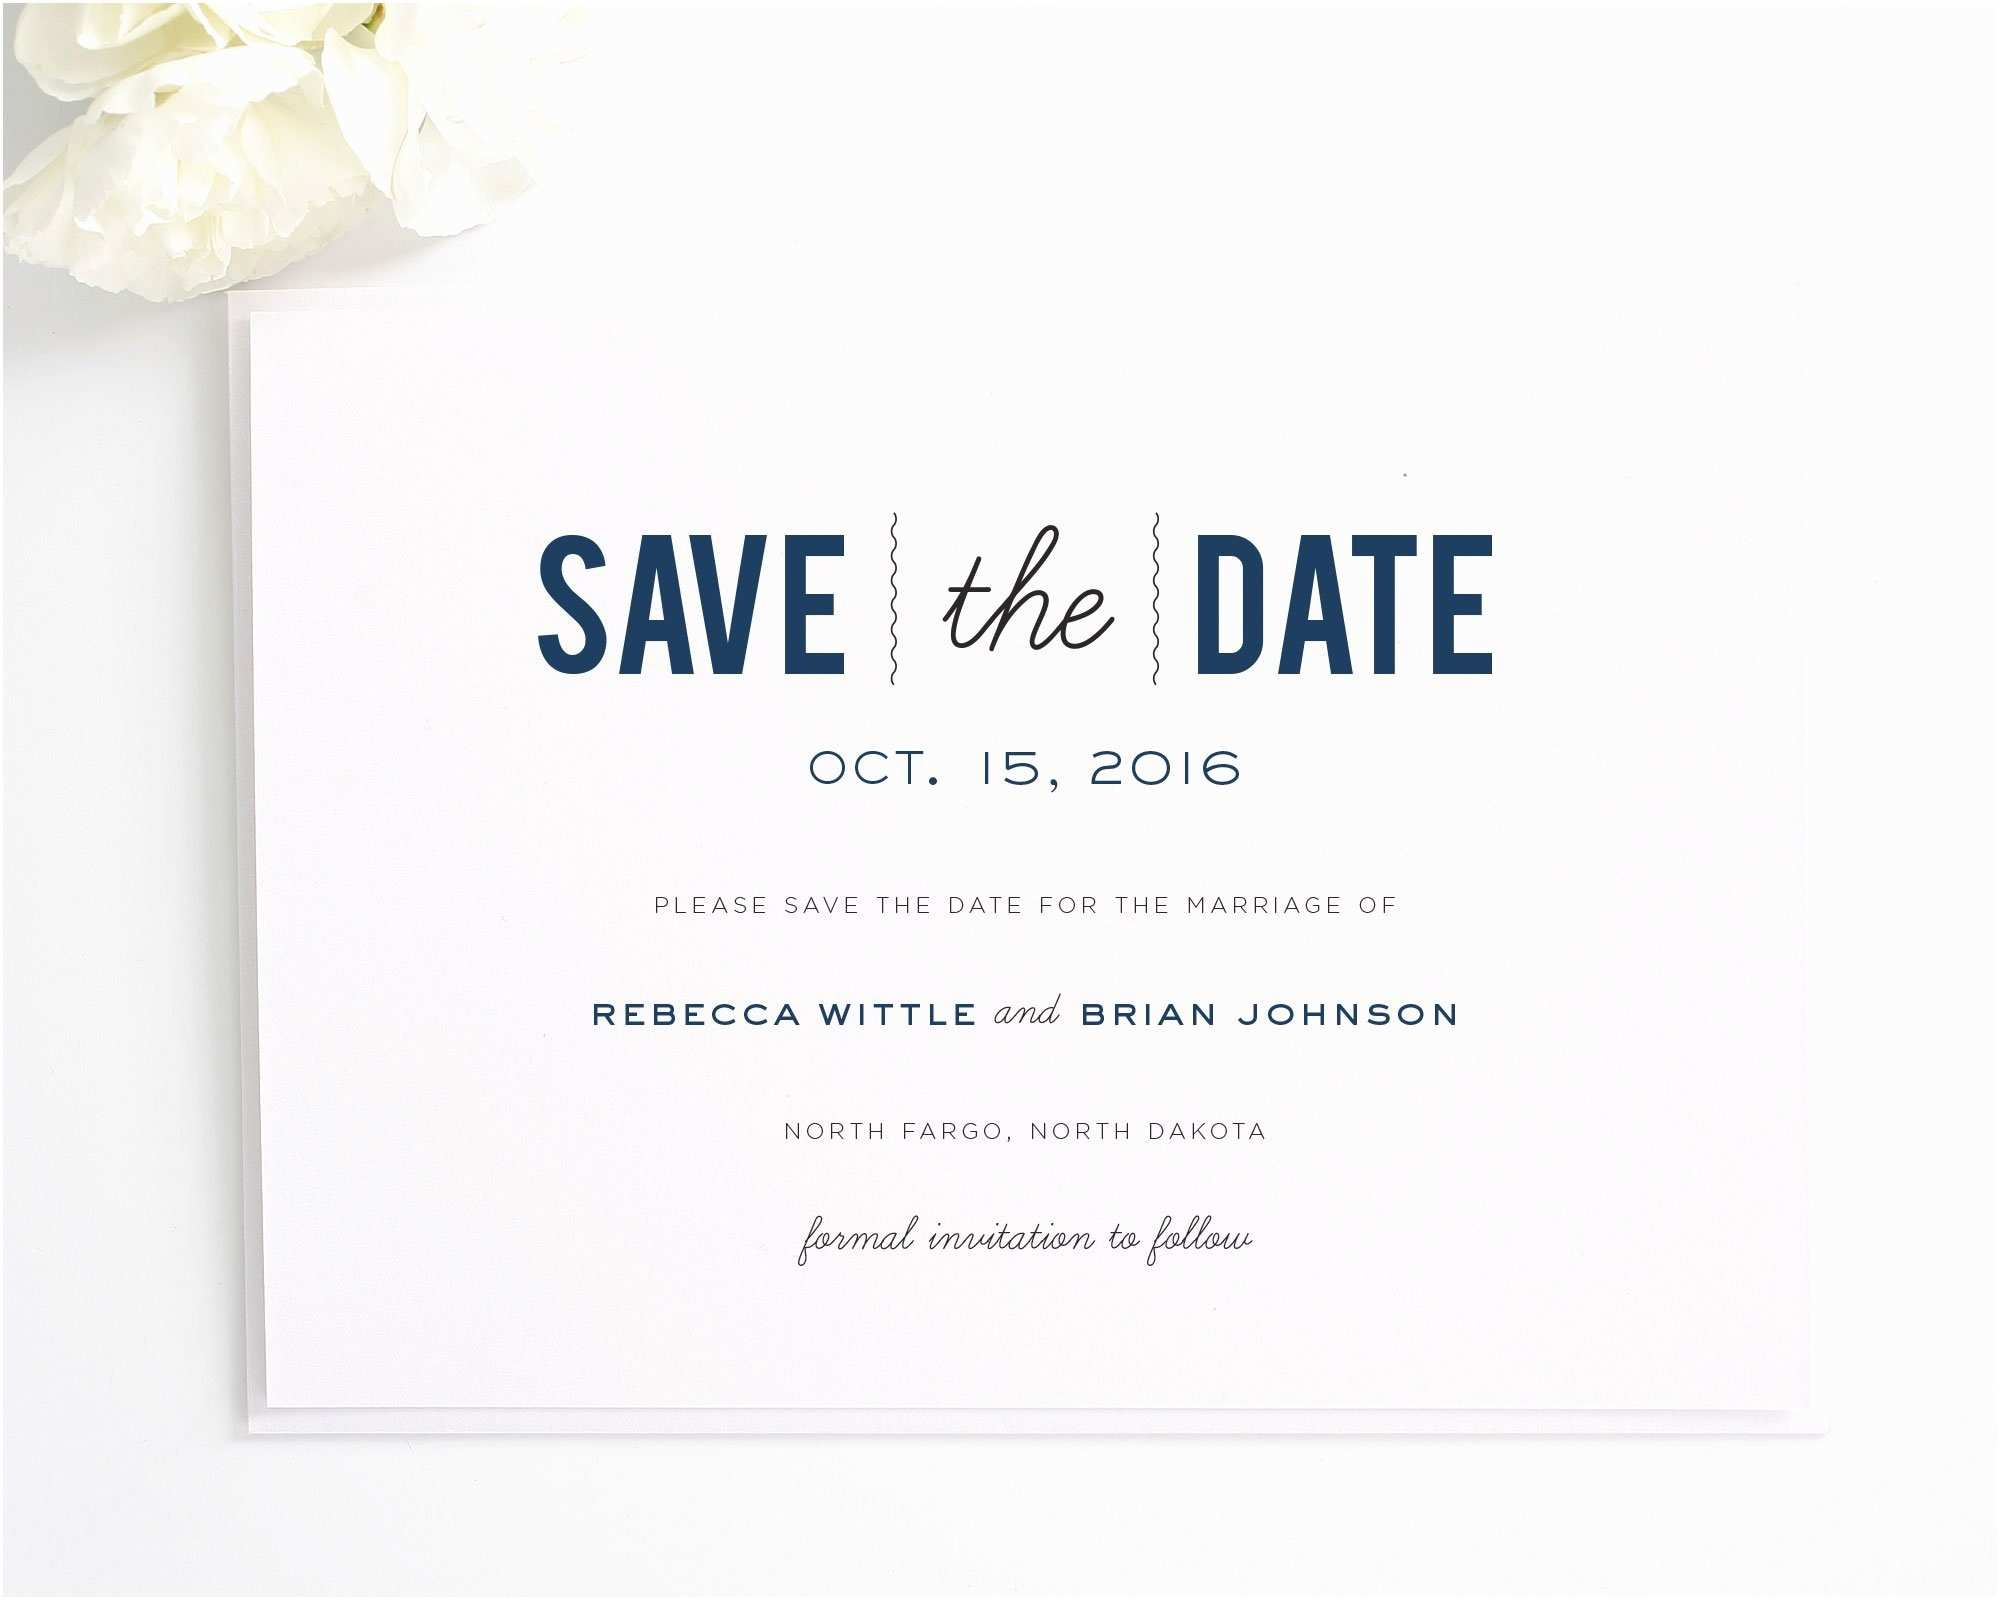 Difference Between Save the Date and Wedding Invitation Save the Date Invitations